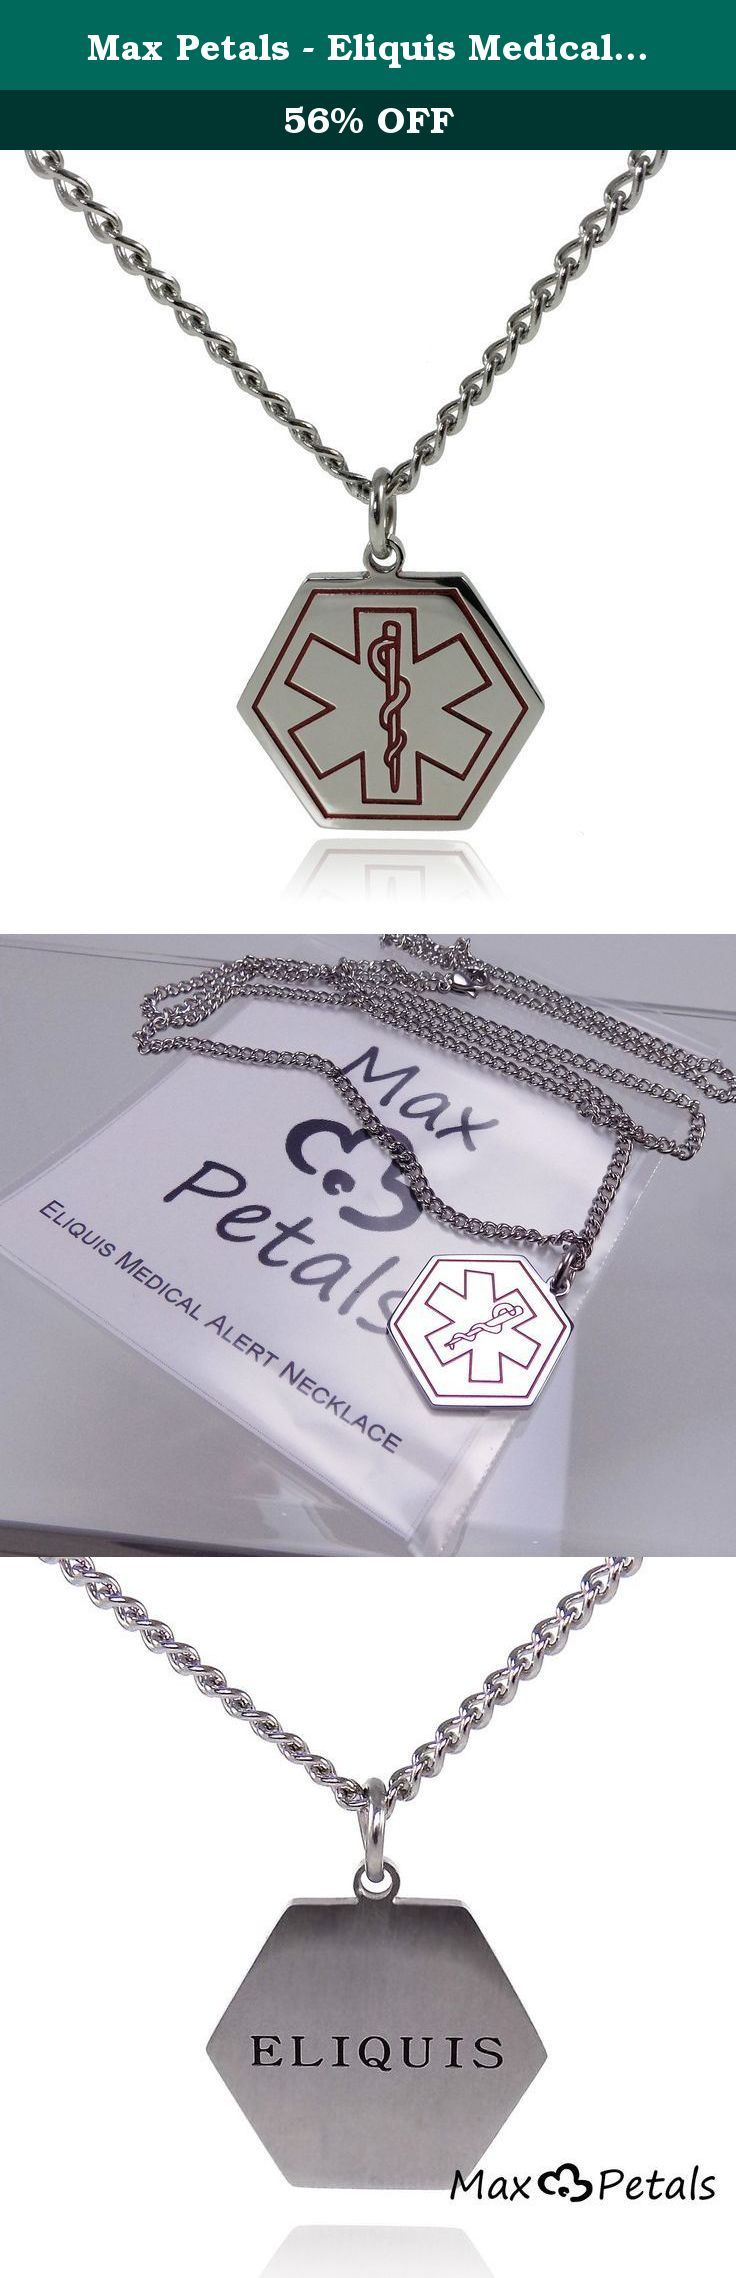 "Max Petals - Eliquis Medical Alert ID Stainless Steel Pendant Necklace with 26"" Chain. Should you become confused or unable to communicate, your medical alert necklace provides the initial awareness to first responders that you have an existing medical condition. Emergency medical personnel are trained to look for this necklace. Upon identifying your condition, the responder can more quickly and accurately diagnose and treat you."